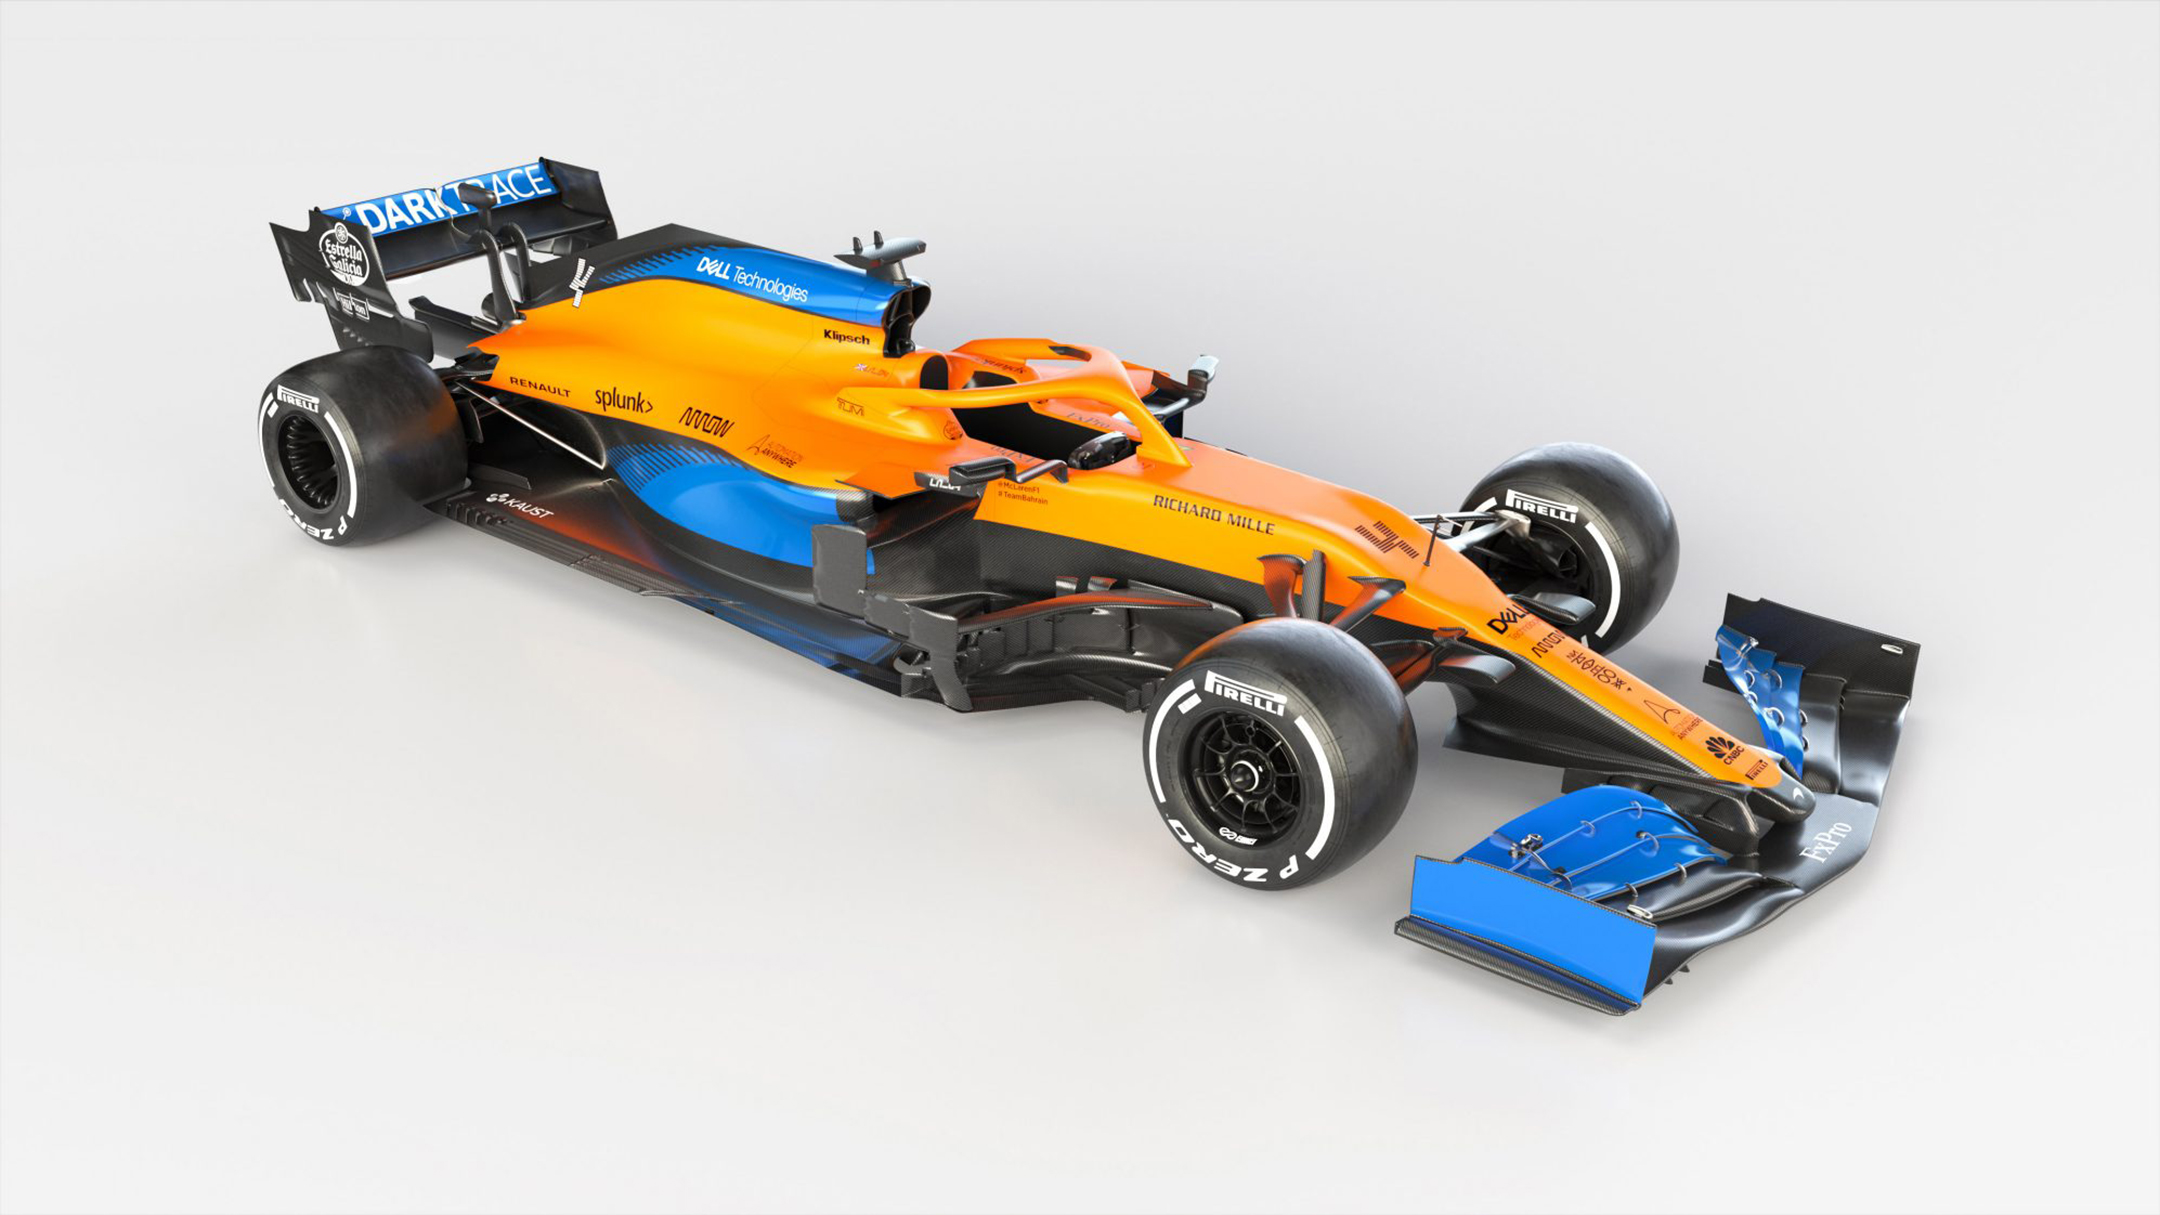 F1 - McLaren Racing - MCL35 - 2020 - front side-face - Renault E-Tech 20 - 35A engine - McLaren Applied Technologies